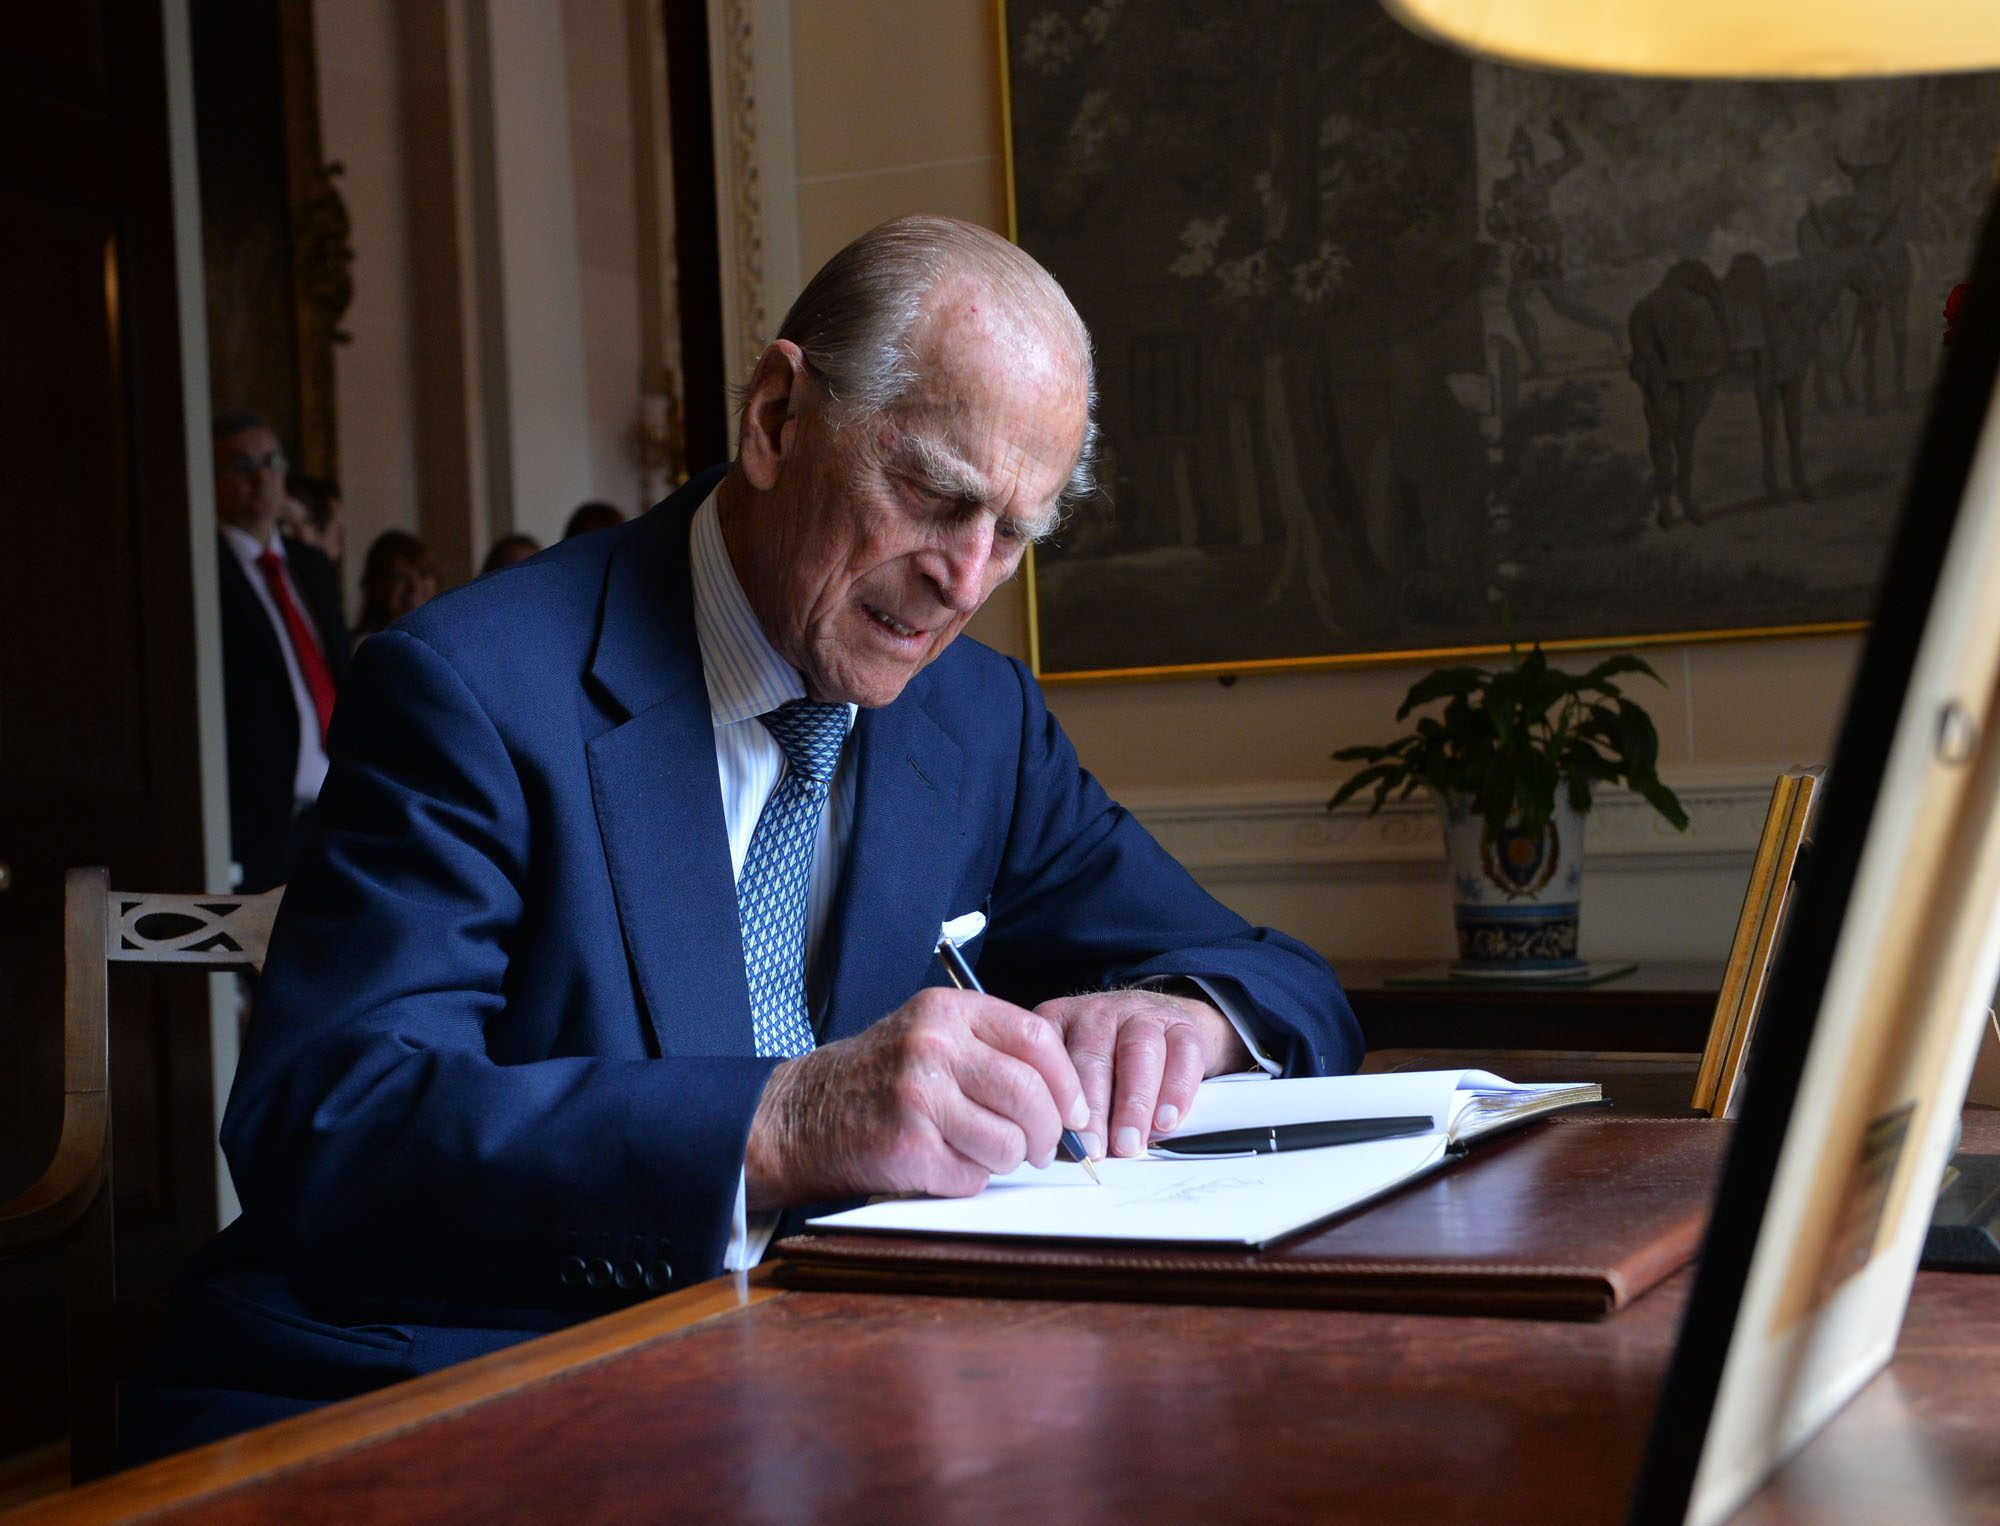 Queen Elizabeth II And Duke Of Edinburgh Visit Northern Ireland